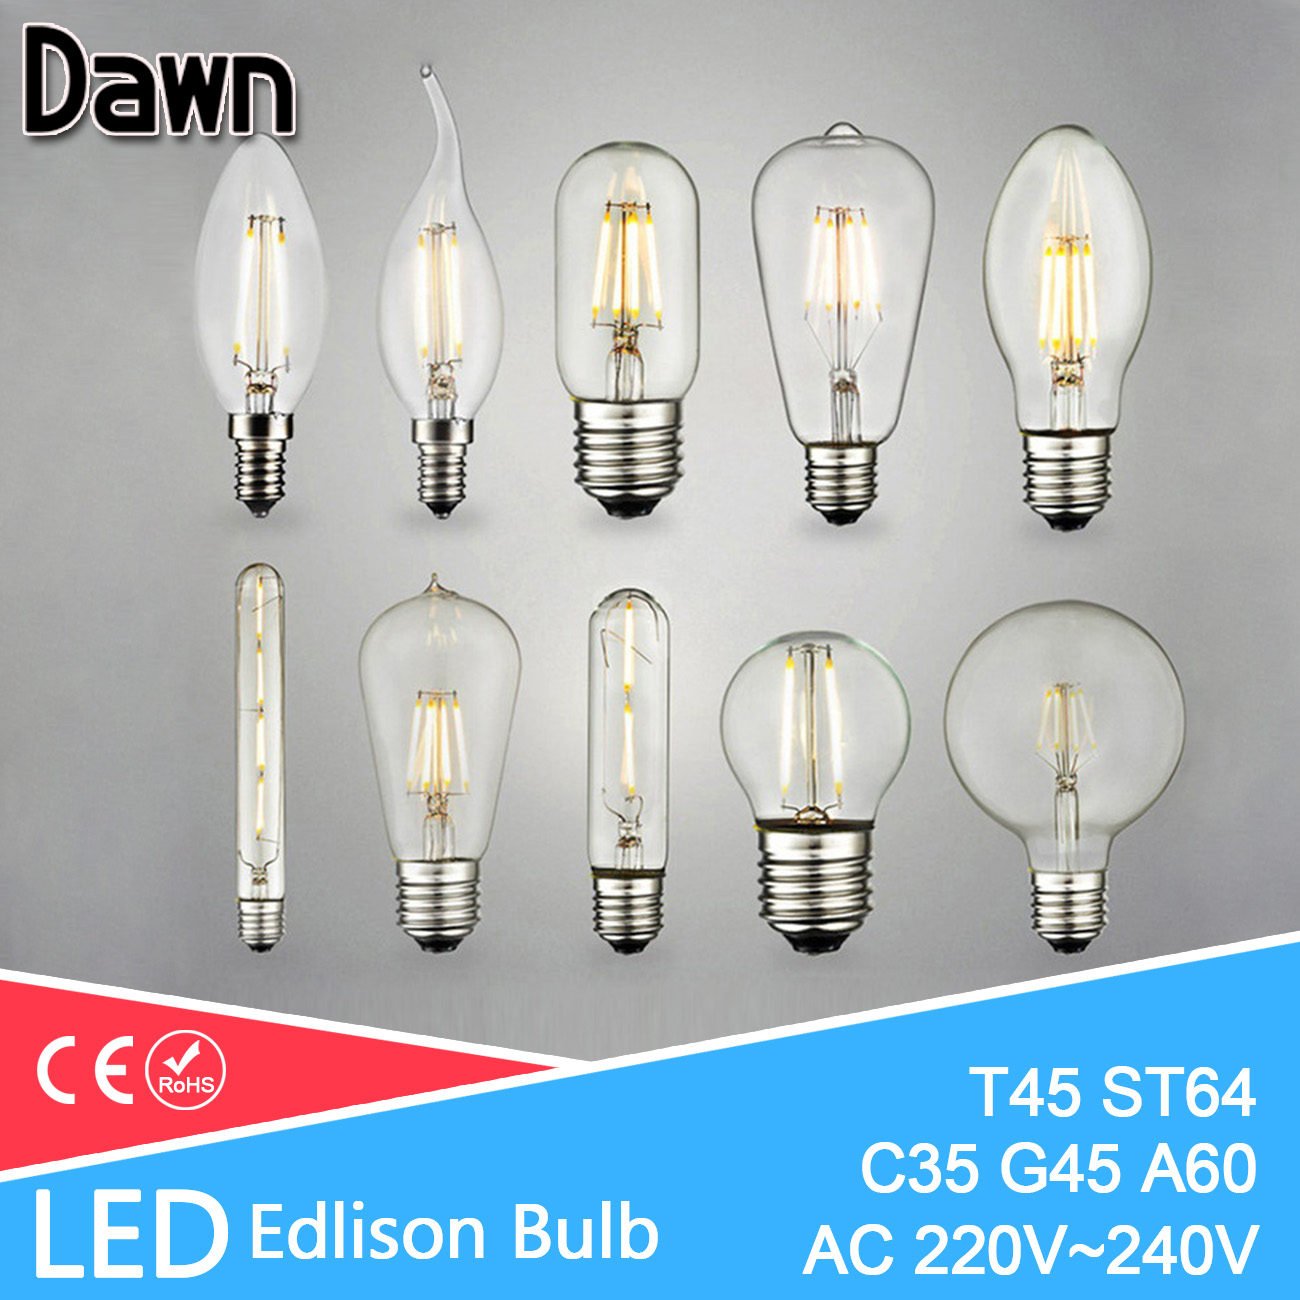 все цены на E14 E27 Led Edison Bulb C35 G45 A60 ST64 G95 Light LED Bulb 8W 6W 4W 2W Christmas Retro LED Lamp Edison 220v Decorative Filament